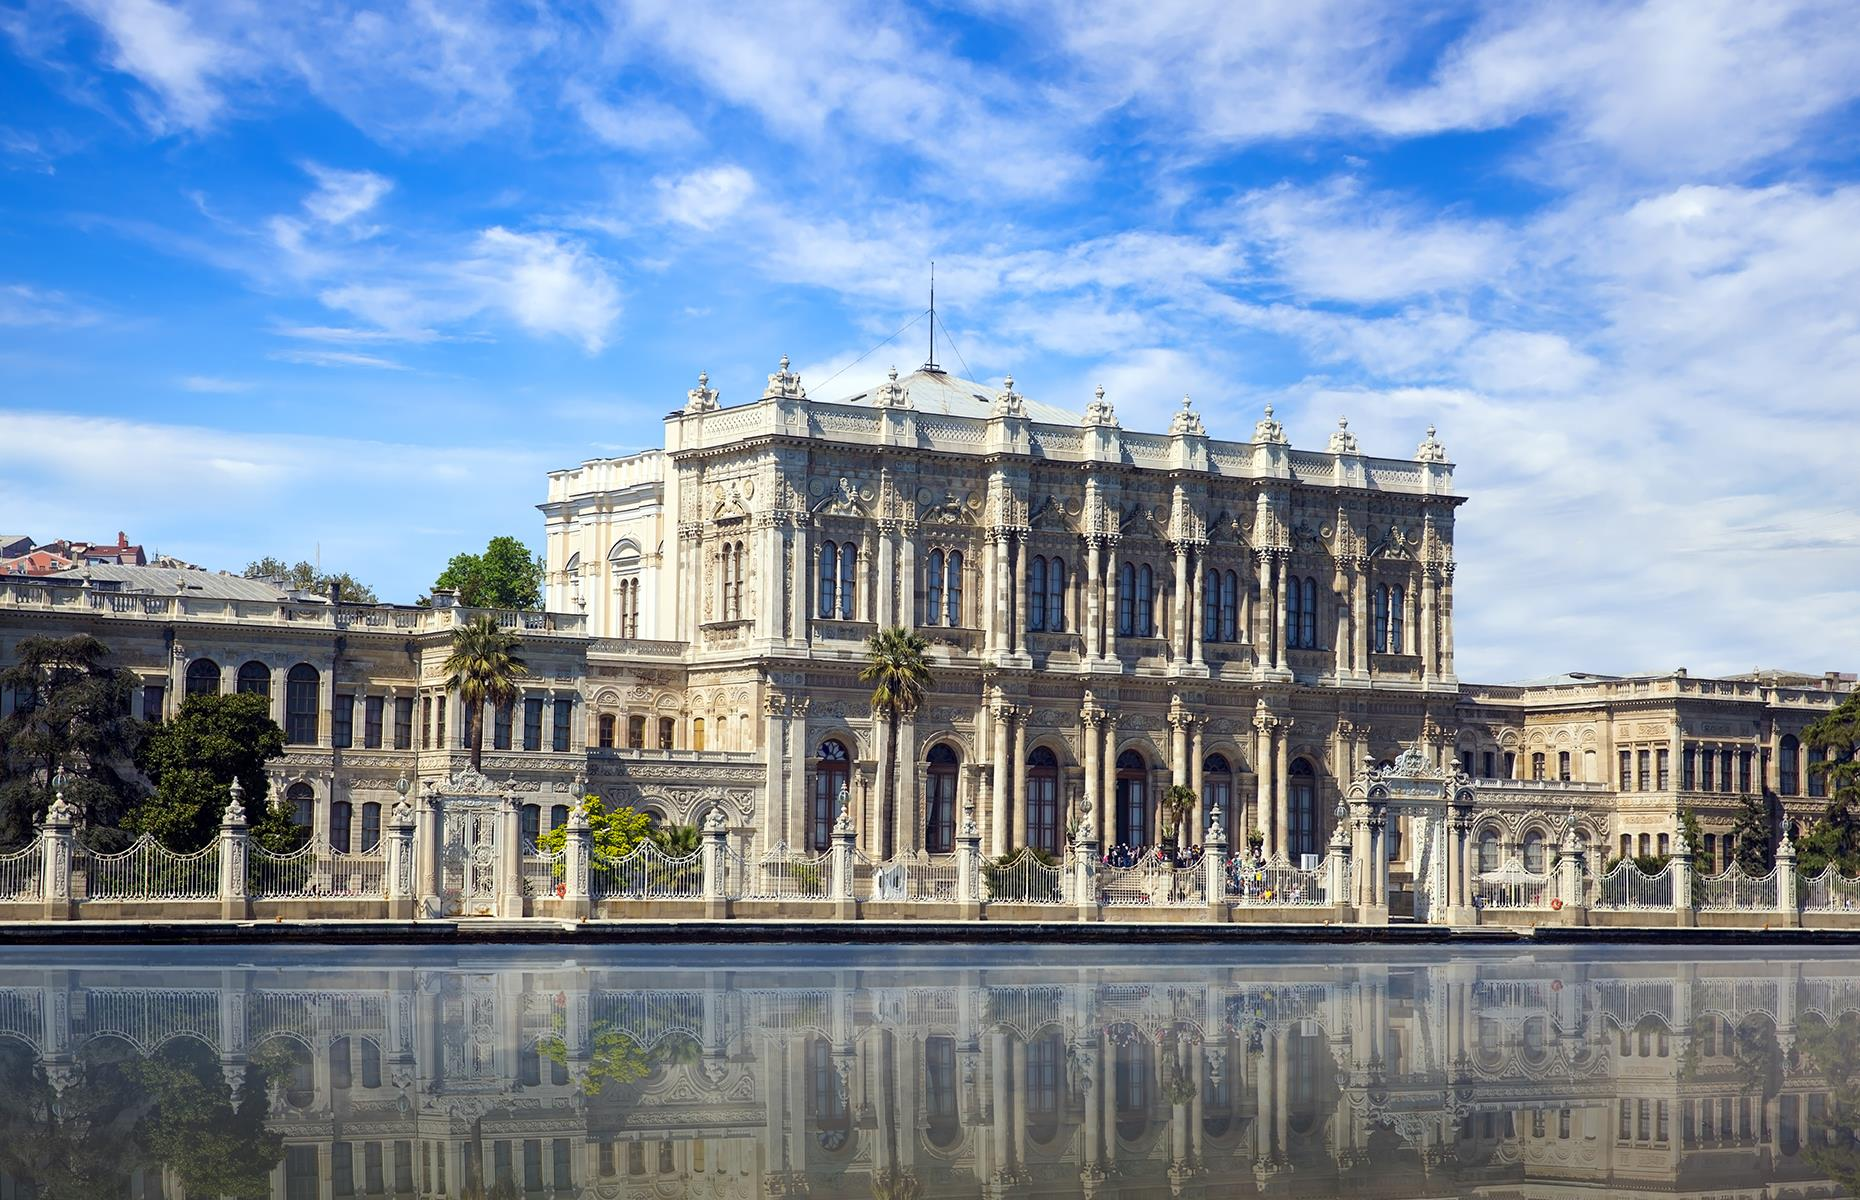 Slide 40 of 53: Home to 285 rooms, 46 halls and 68 bathrooms, it's safe to say that Turkey's Dolmabahçe Palace is one of the world's most opulent palaces. The estate served as the seat of Ottoman Empire from 1856 to 1887, and 1909 to 1922, and its spectacular interior conceals a rather lavish secret. During the construction, Emperor Abdülmecid I wanted no expense to be spared, so a whopping 14 tons of gold were used to gild the palace's ceilings.